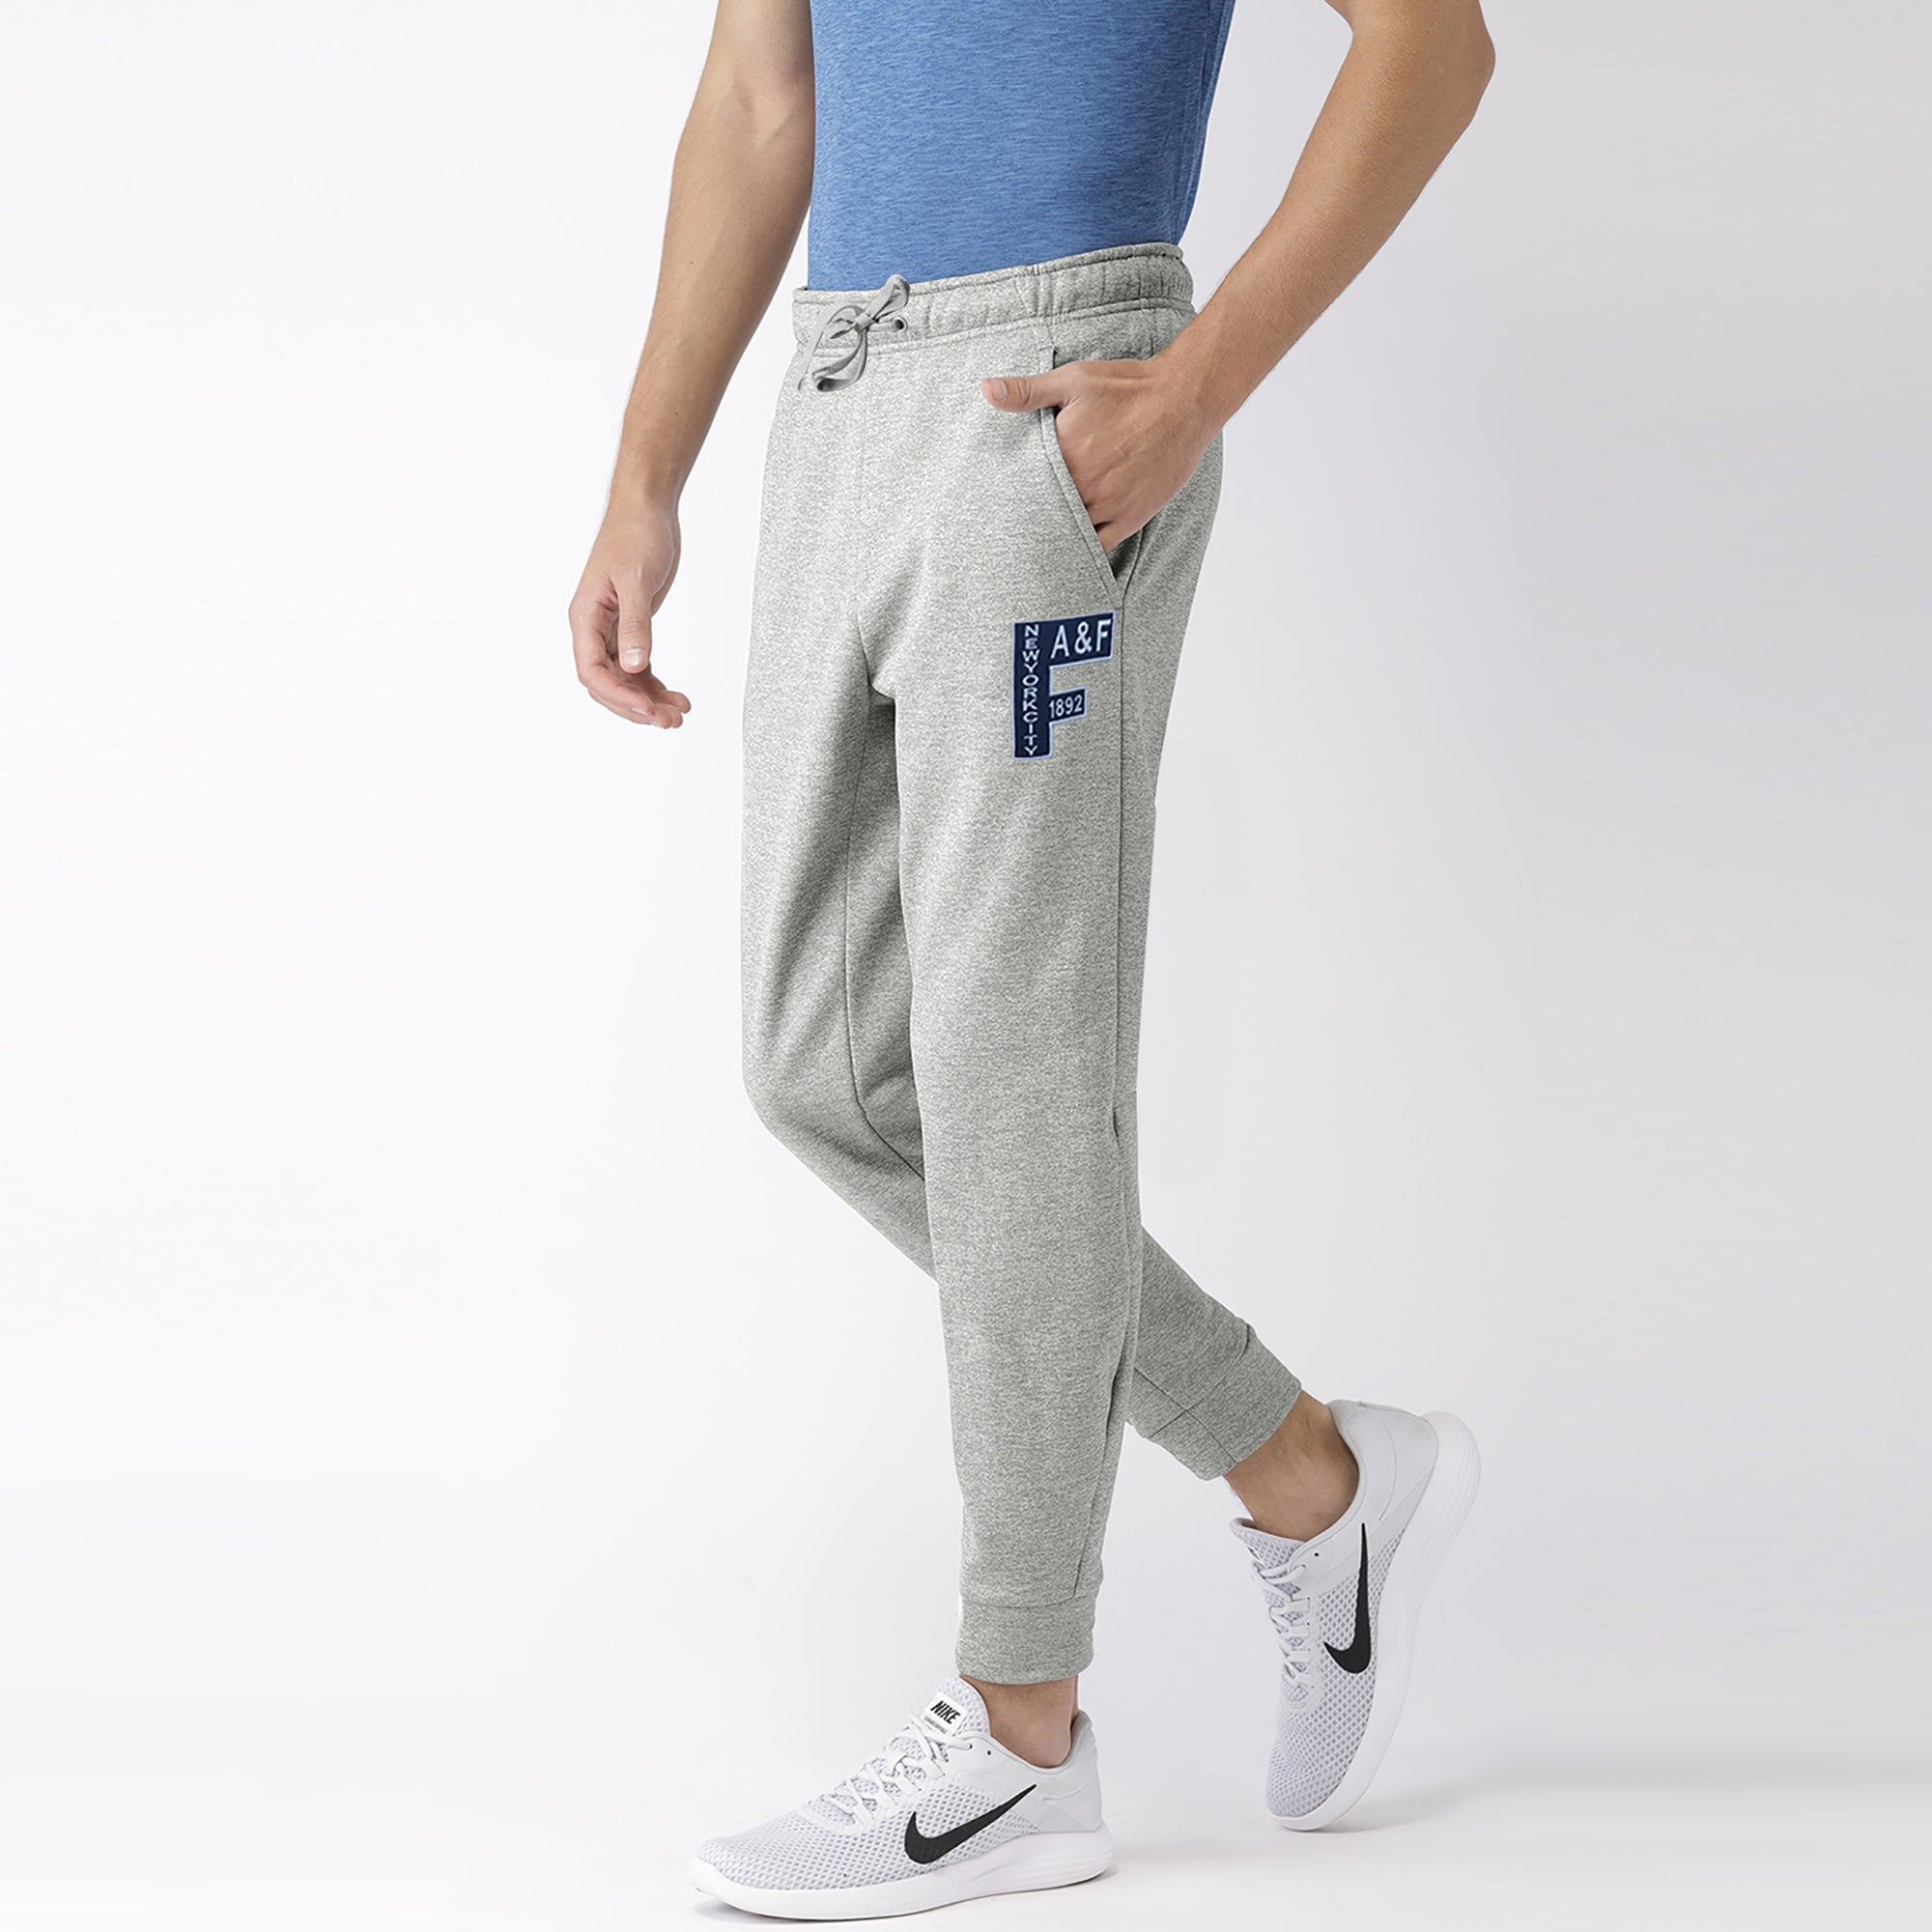 A&F Fleece Slim Fit Rib Bottom Jogger Trouser For Men-Grey Melange-BE7458